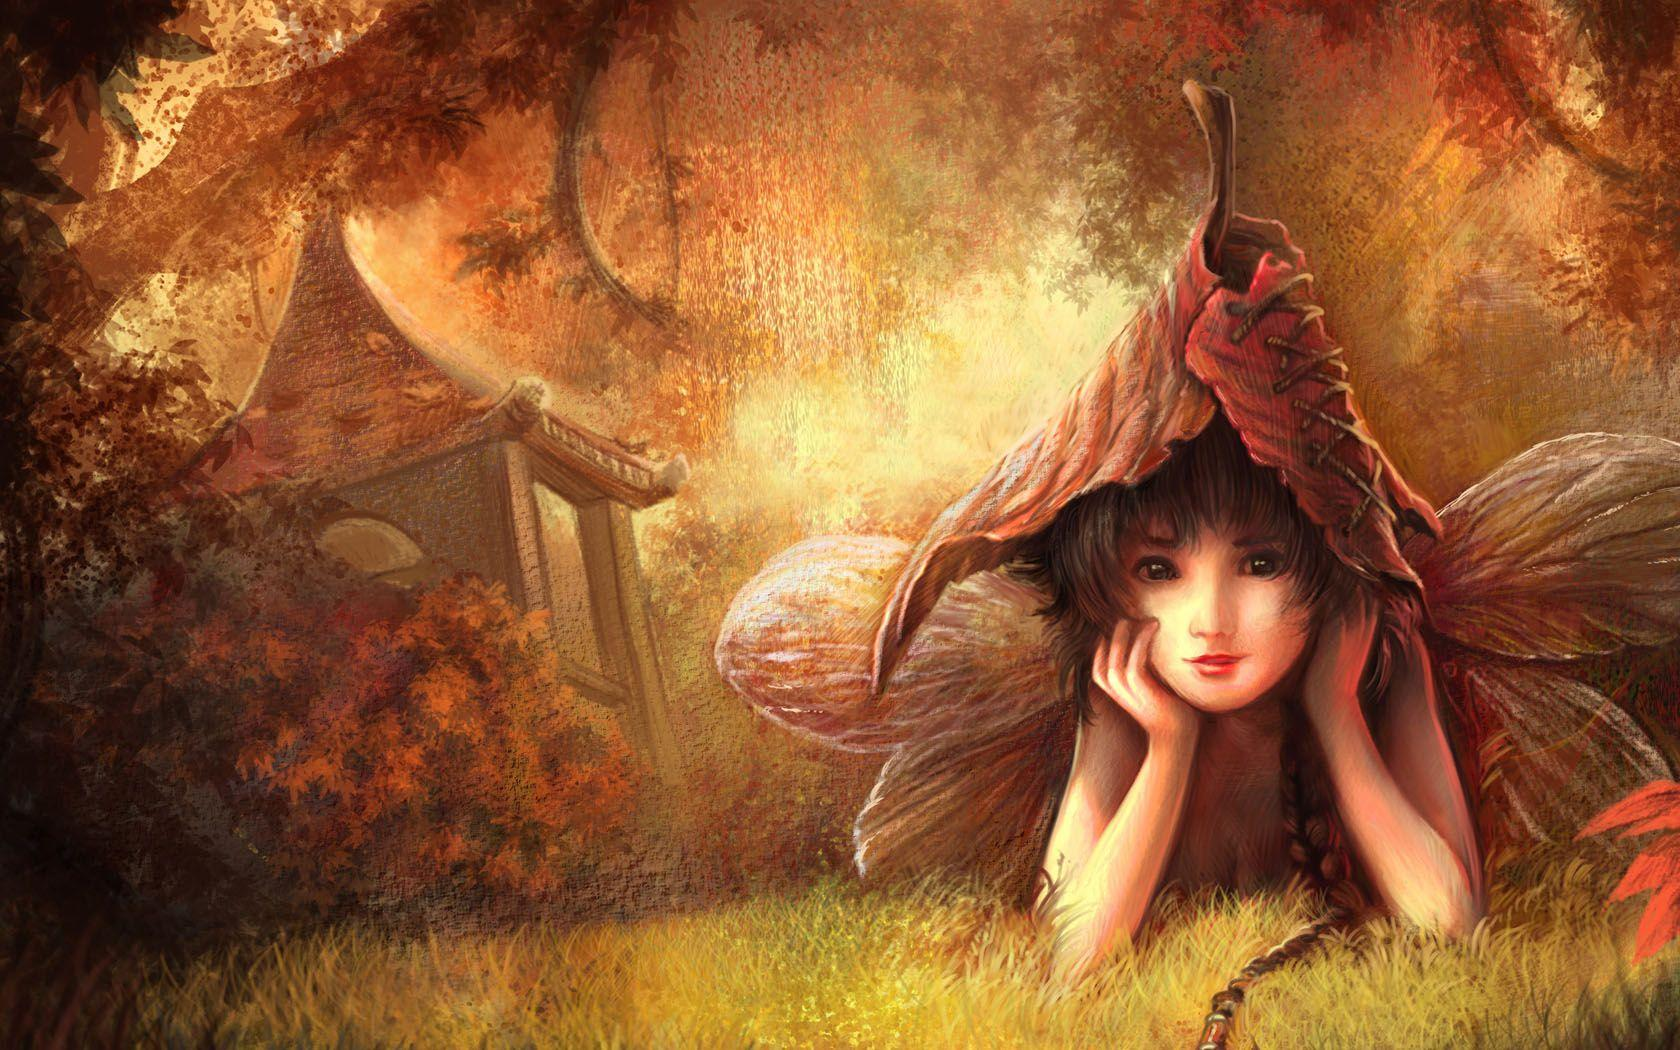 Hd fairies wallpapers free mobile dwnld wallpaper cave fairy 1680x1050 px top on wallpapers and pictures download free voltagebd Gallery